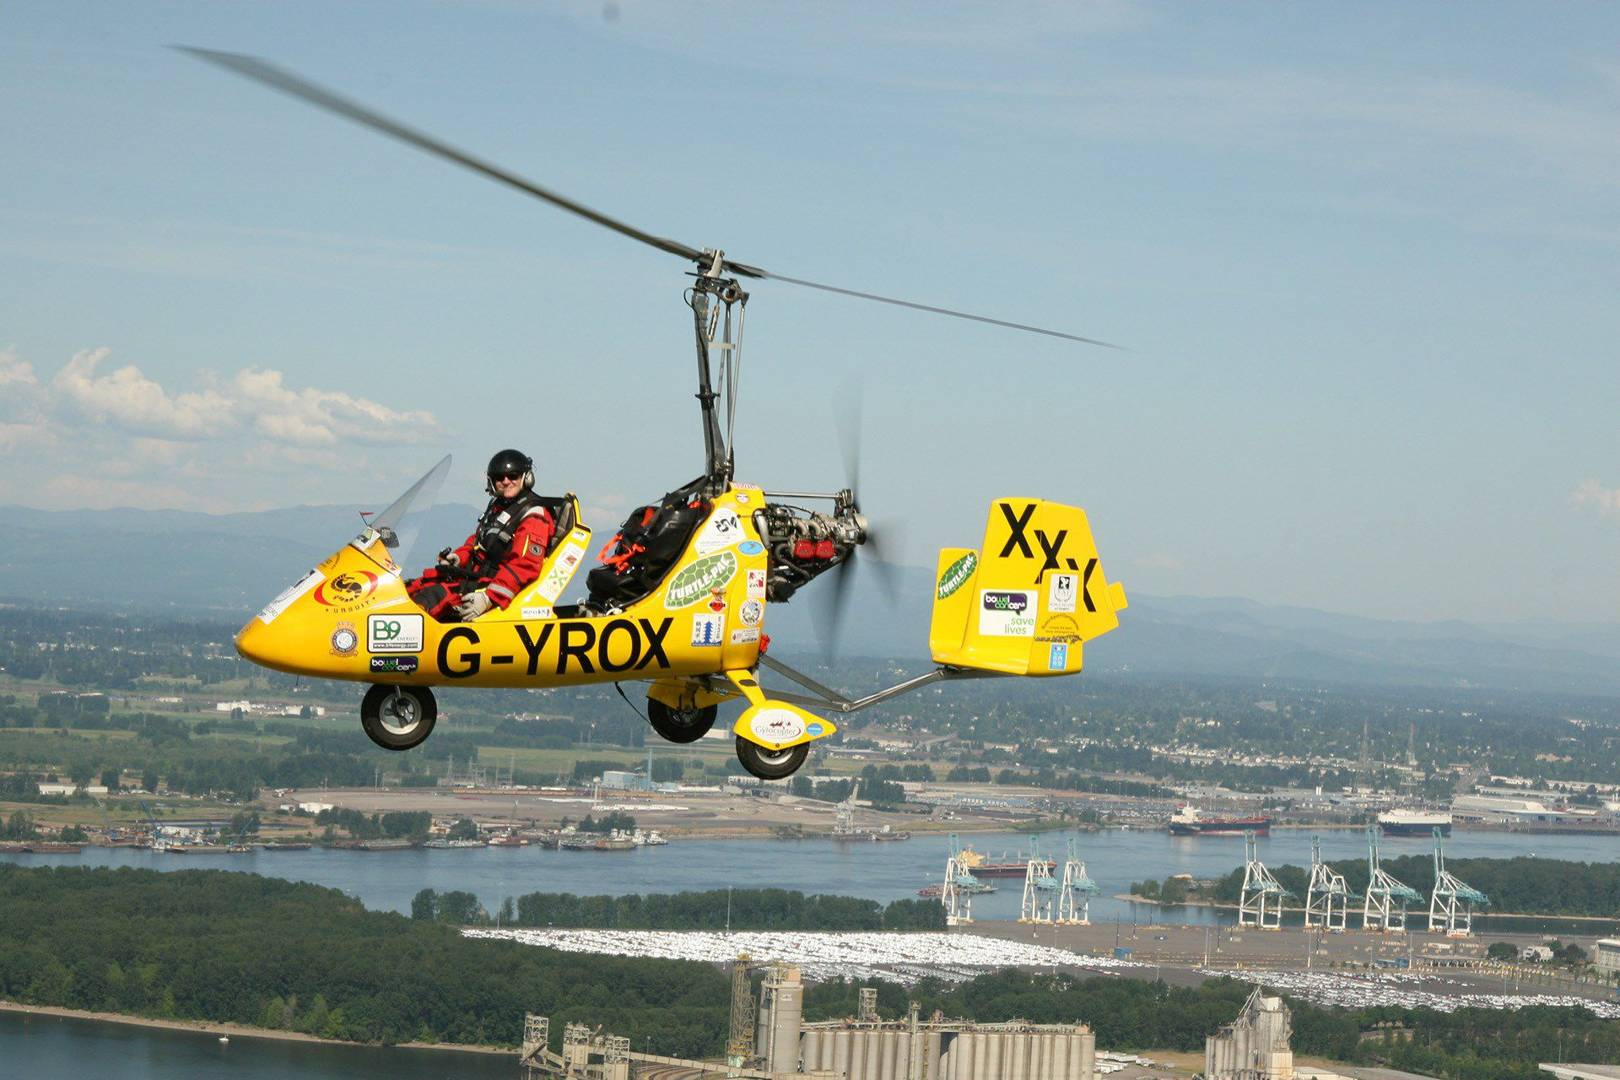 Gyrocopter man completes epic round-the-world flight | WIRED UK